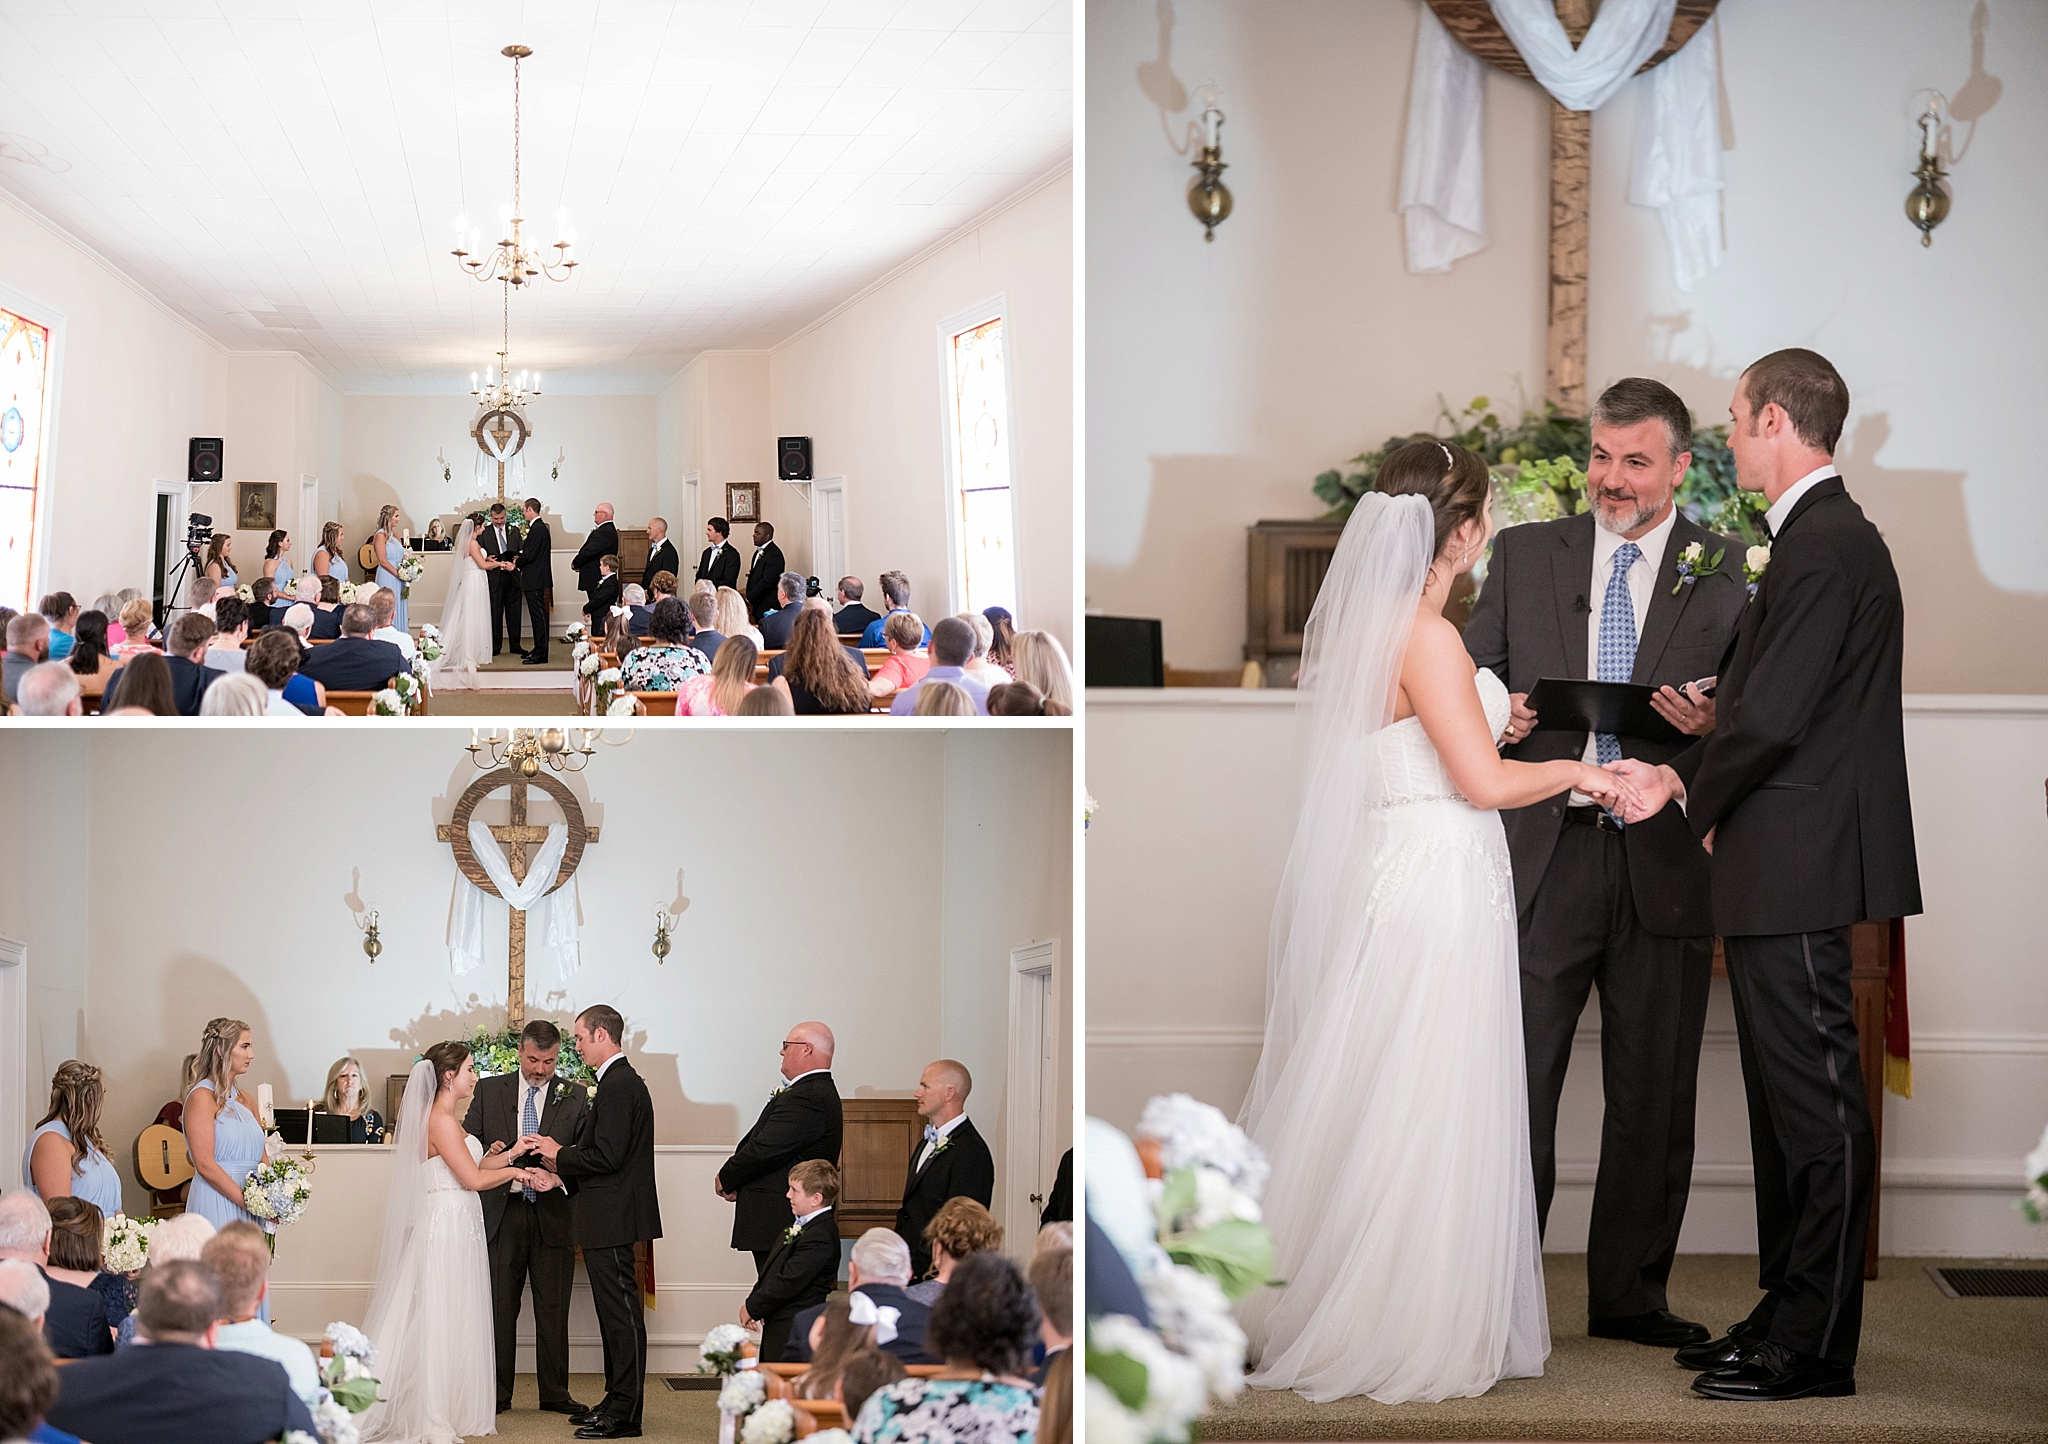 400-Saint-Andrews-Wedding-NC-Photographer-141.jpg